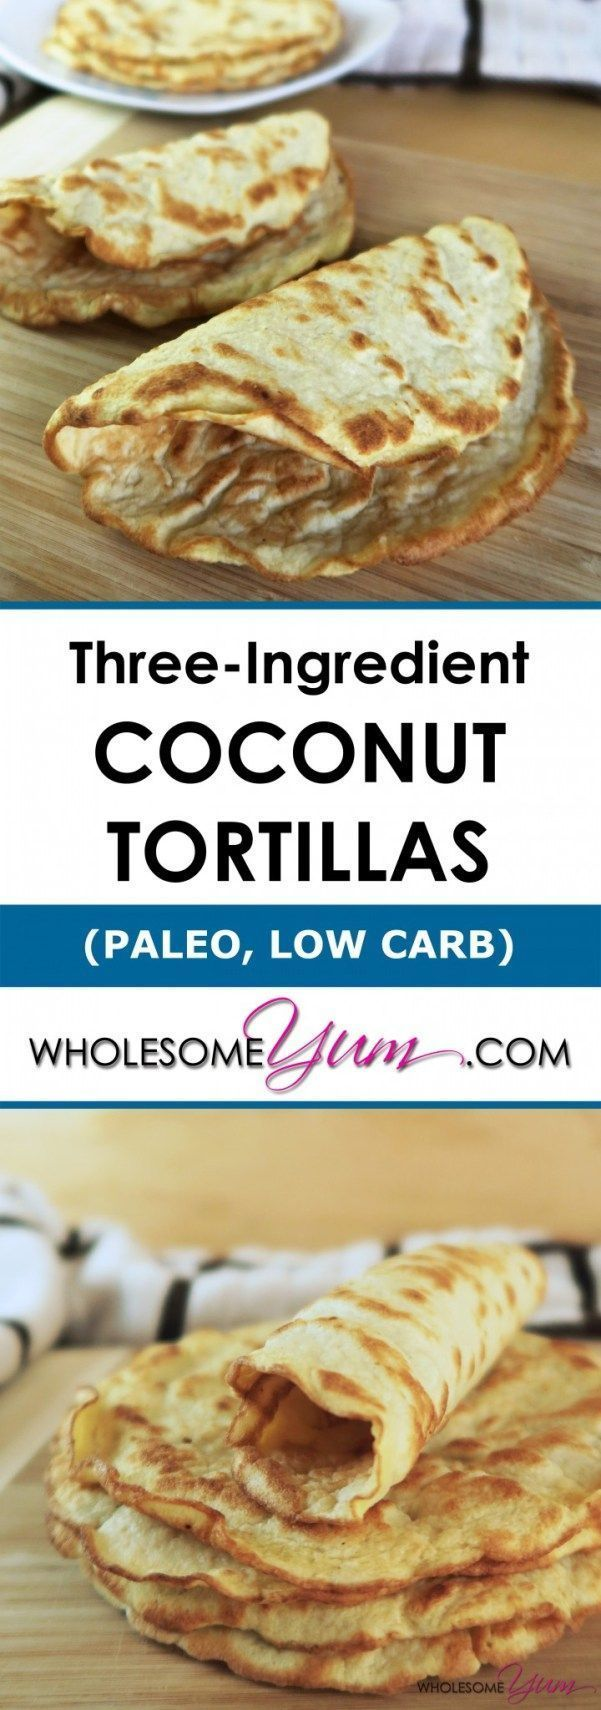 Three-Ingredient Paleo Tortillas - These easy tortillas are low carb, gluten-free, paleo, and made with just 3 simple ingredients. Pliable just like real flour tortillas, but so much healthier!